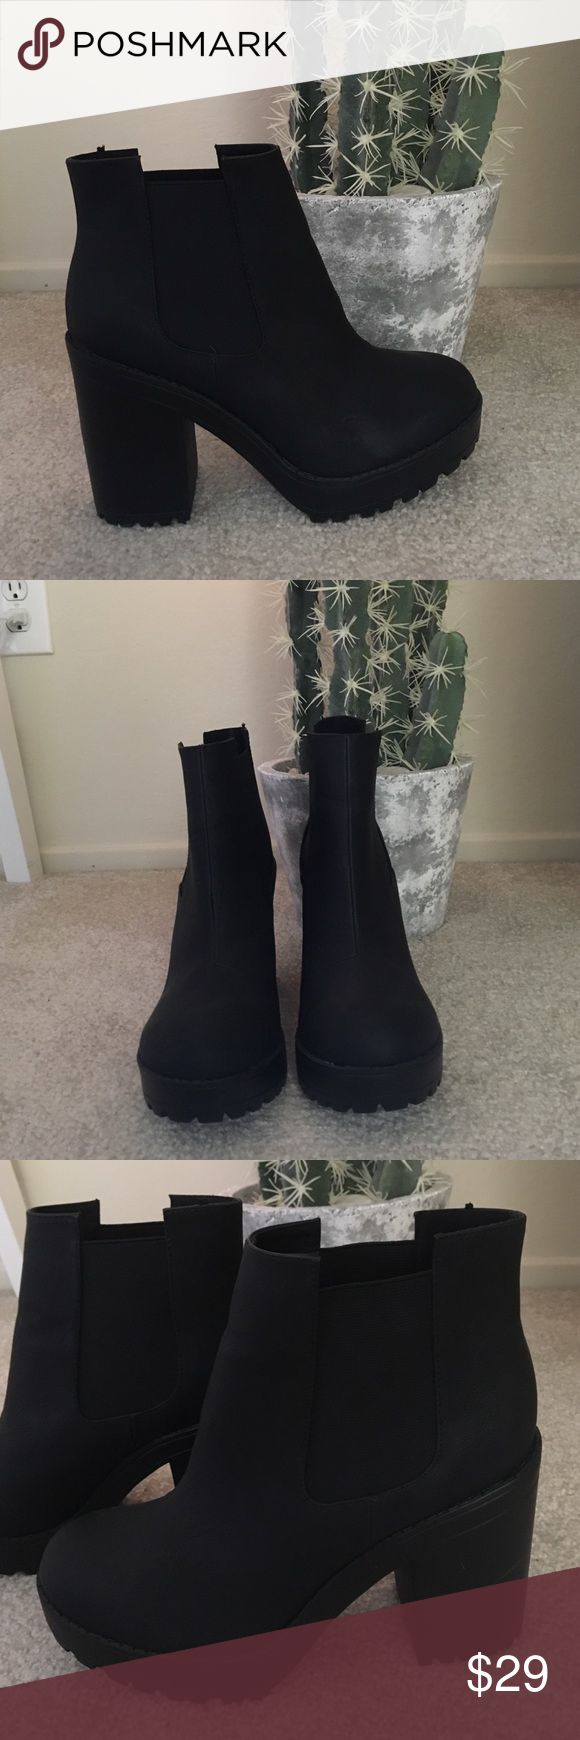 High heel chelsea boots Used only one time. Perfect condition. High heel chelsea boots from H&M. H&M Shoes Heeled Boots